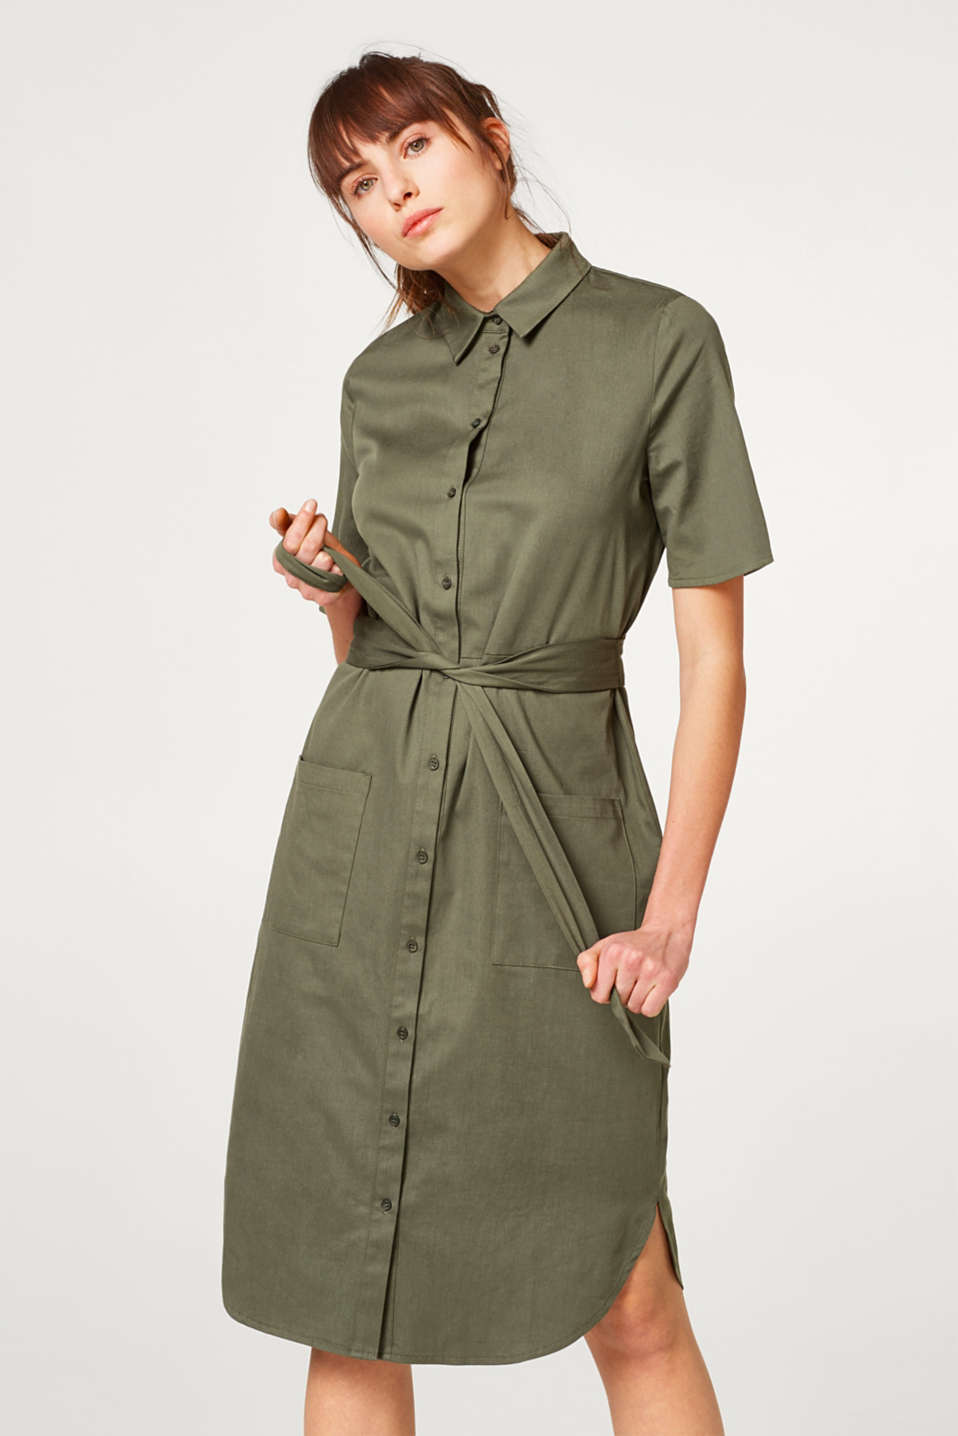 Esprit - Knee-length shirt dress composed of stretch cotton